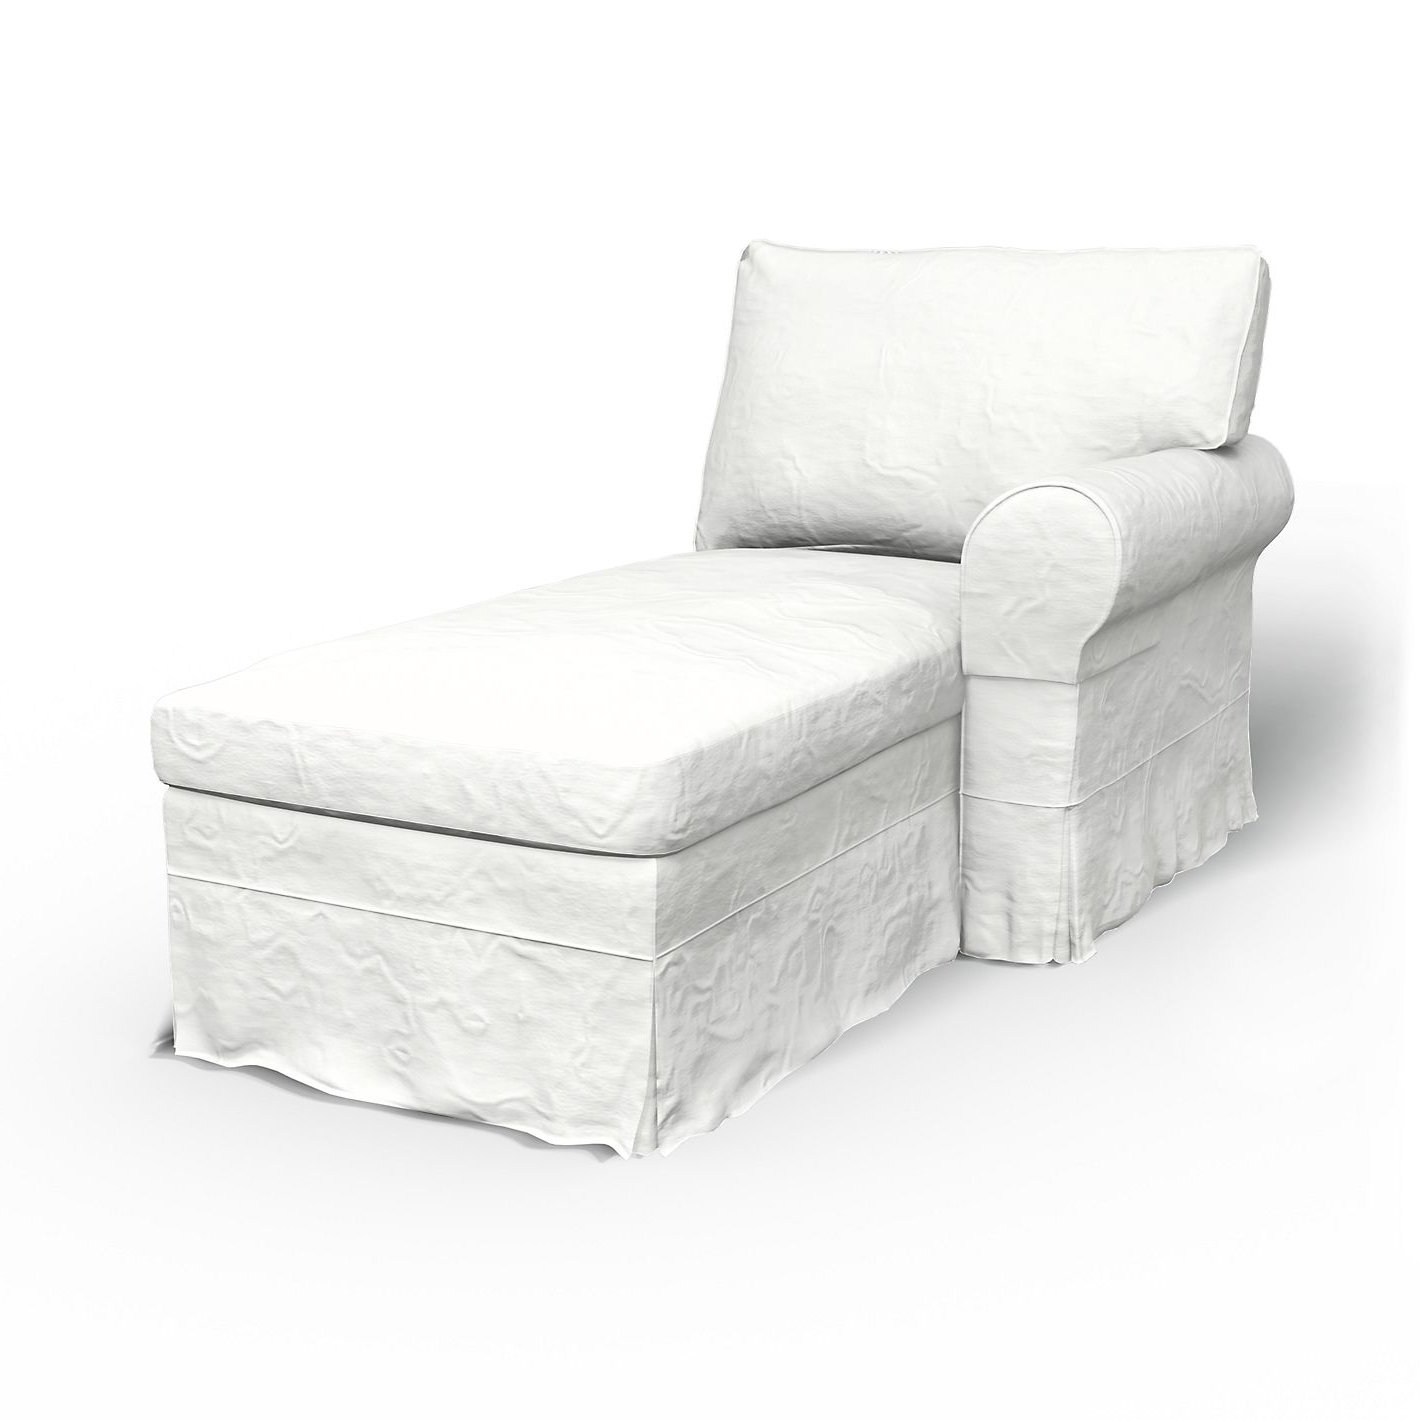 Cover For Chaise Lounge Chair • Lounge Chairs Ideas Throughout Well Known Chaise Lounge Slipcovers (View 13 of 15)